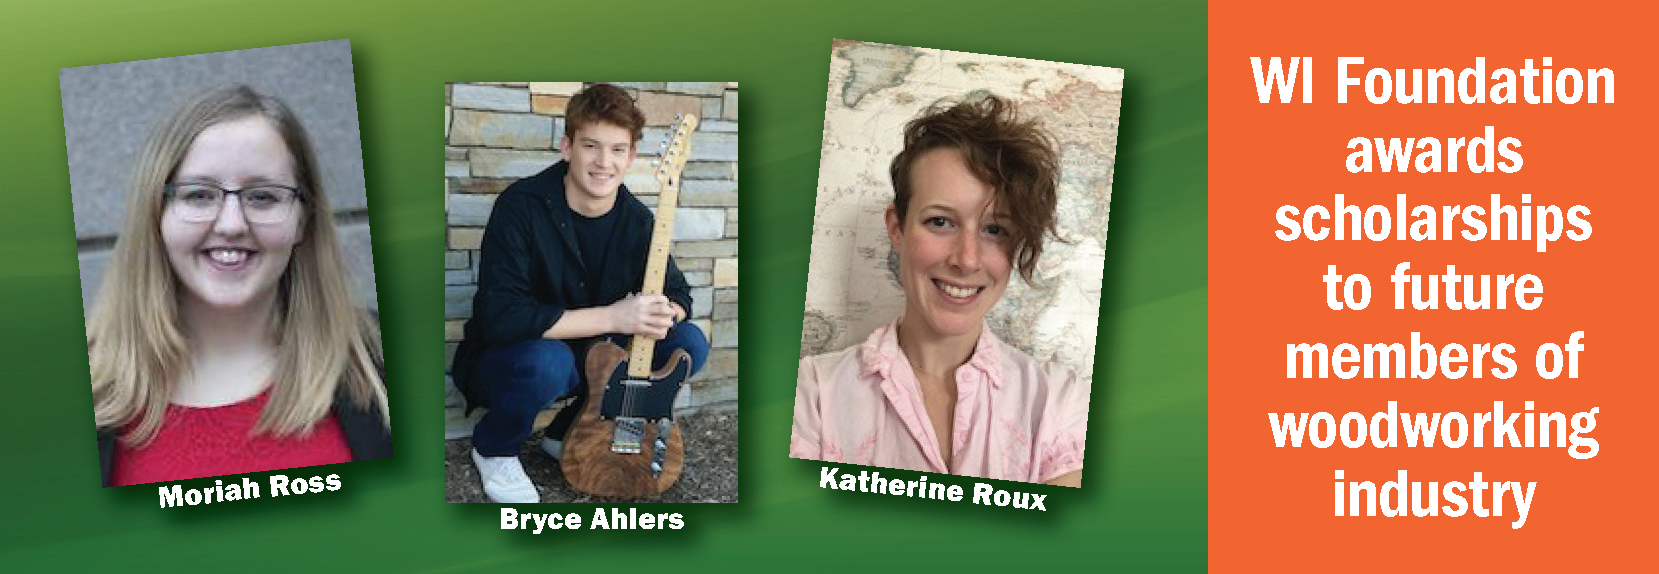 Images of Moriah Ross, Bryce Ahlers, and Katherine Roux. WI Foundation awards scholarships to future members of woodworking industry.